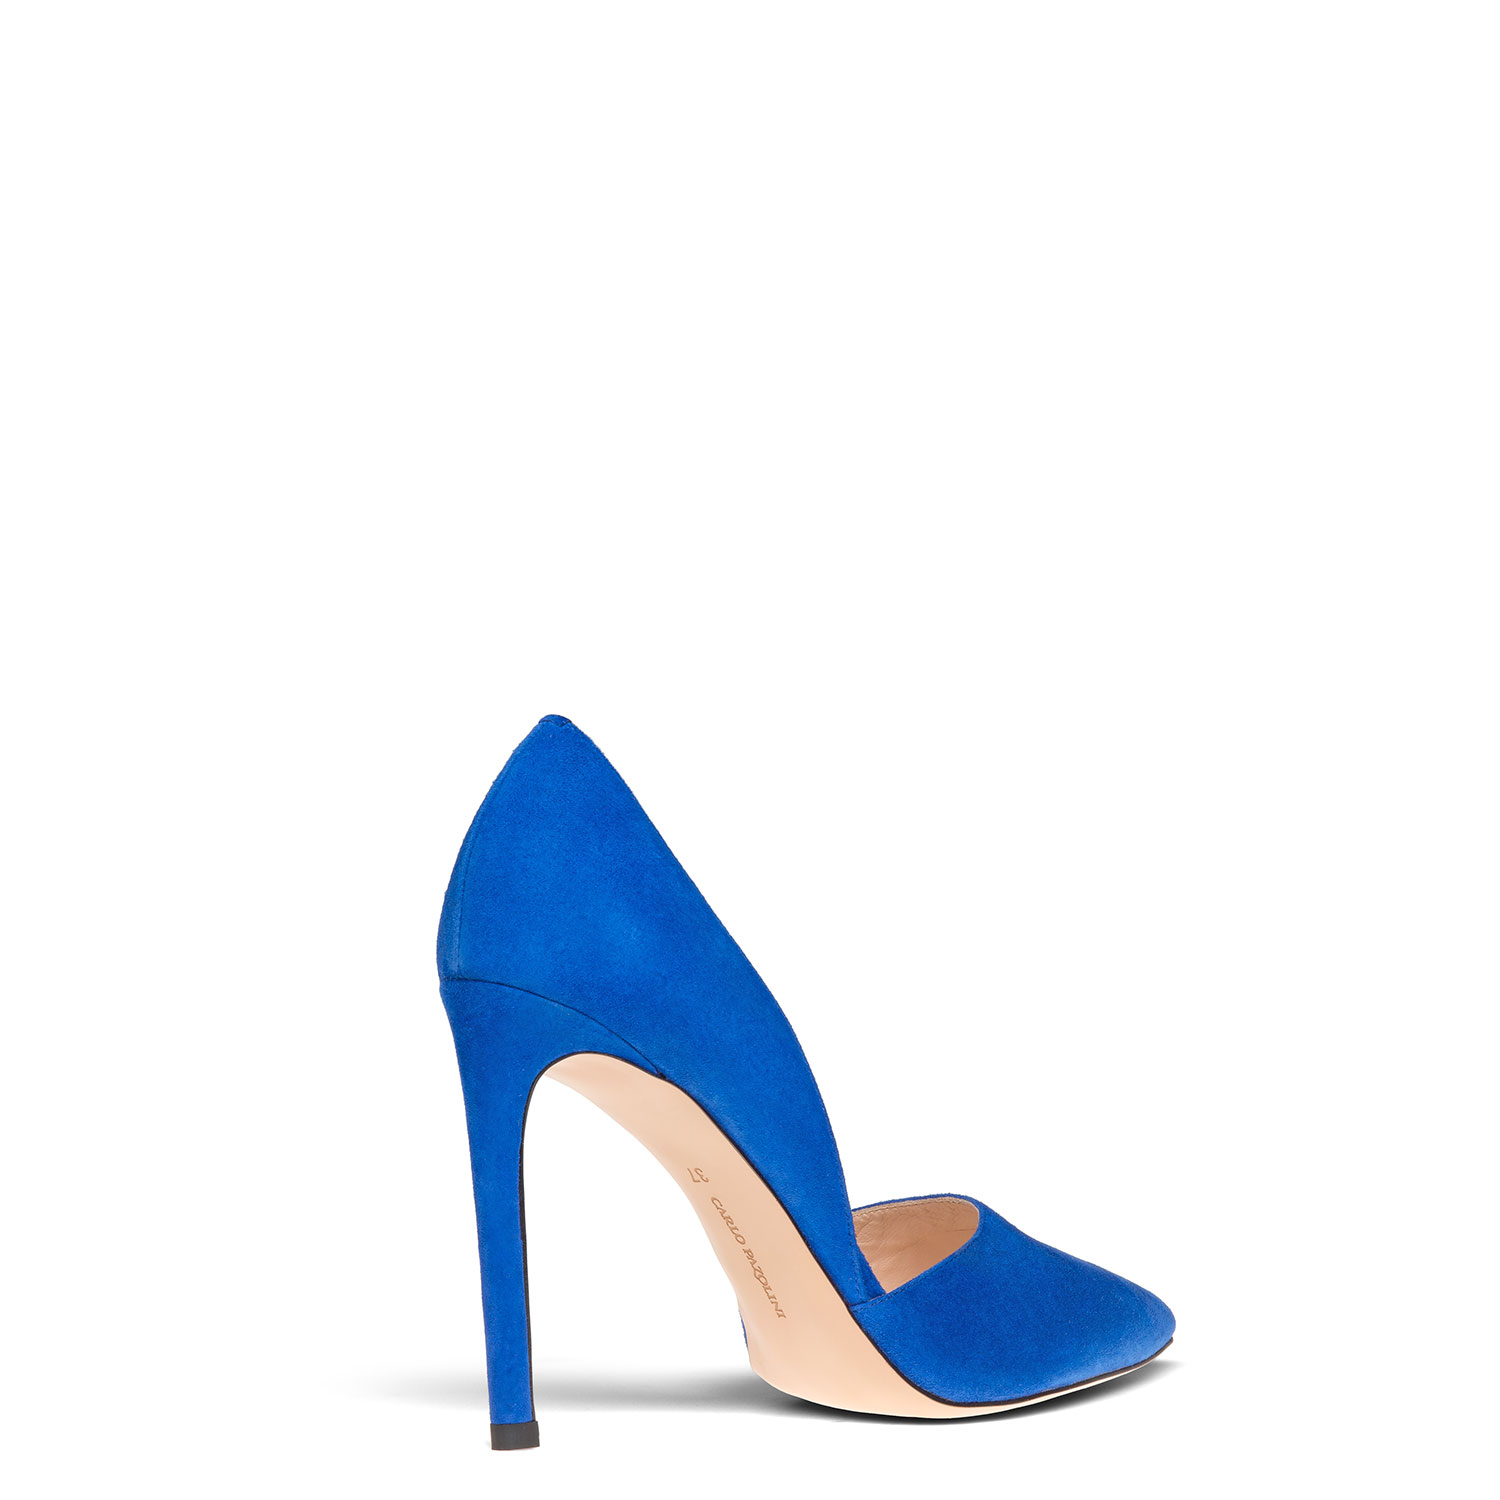 Women's shoes CARLO PAZOLINI FL-ALV5-6